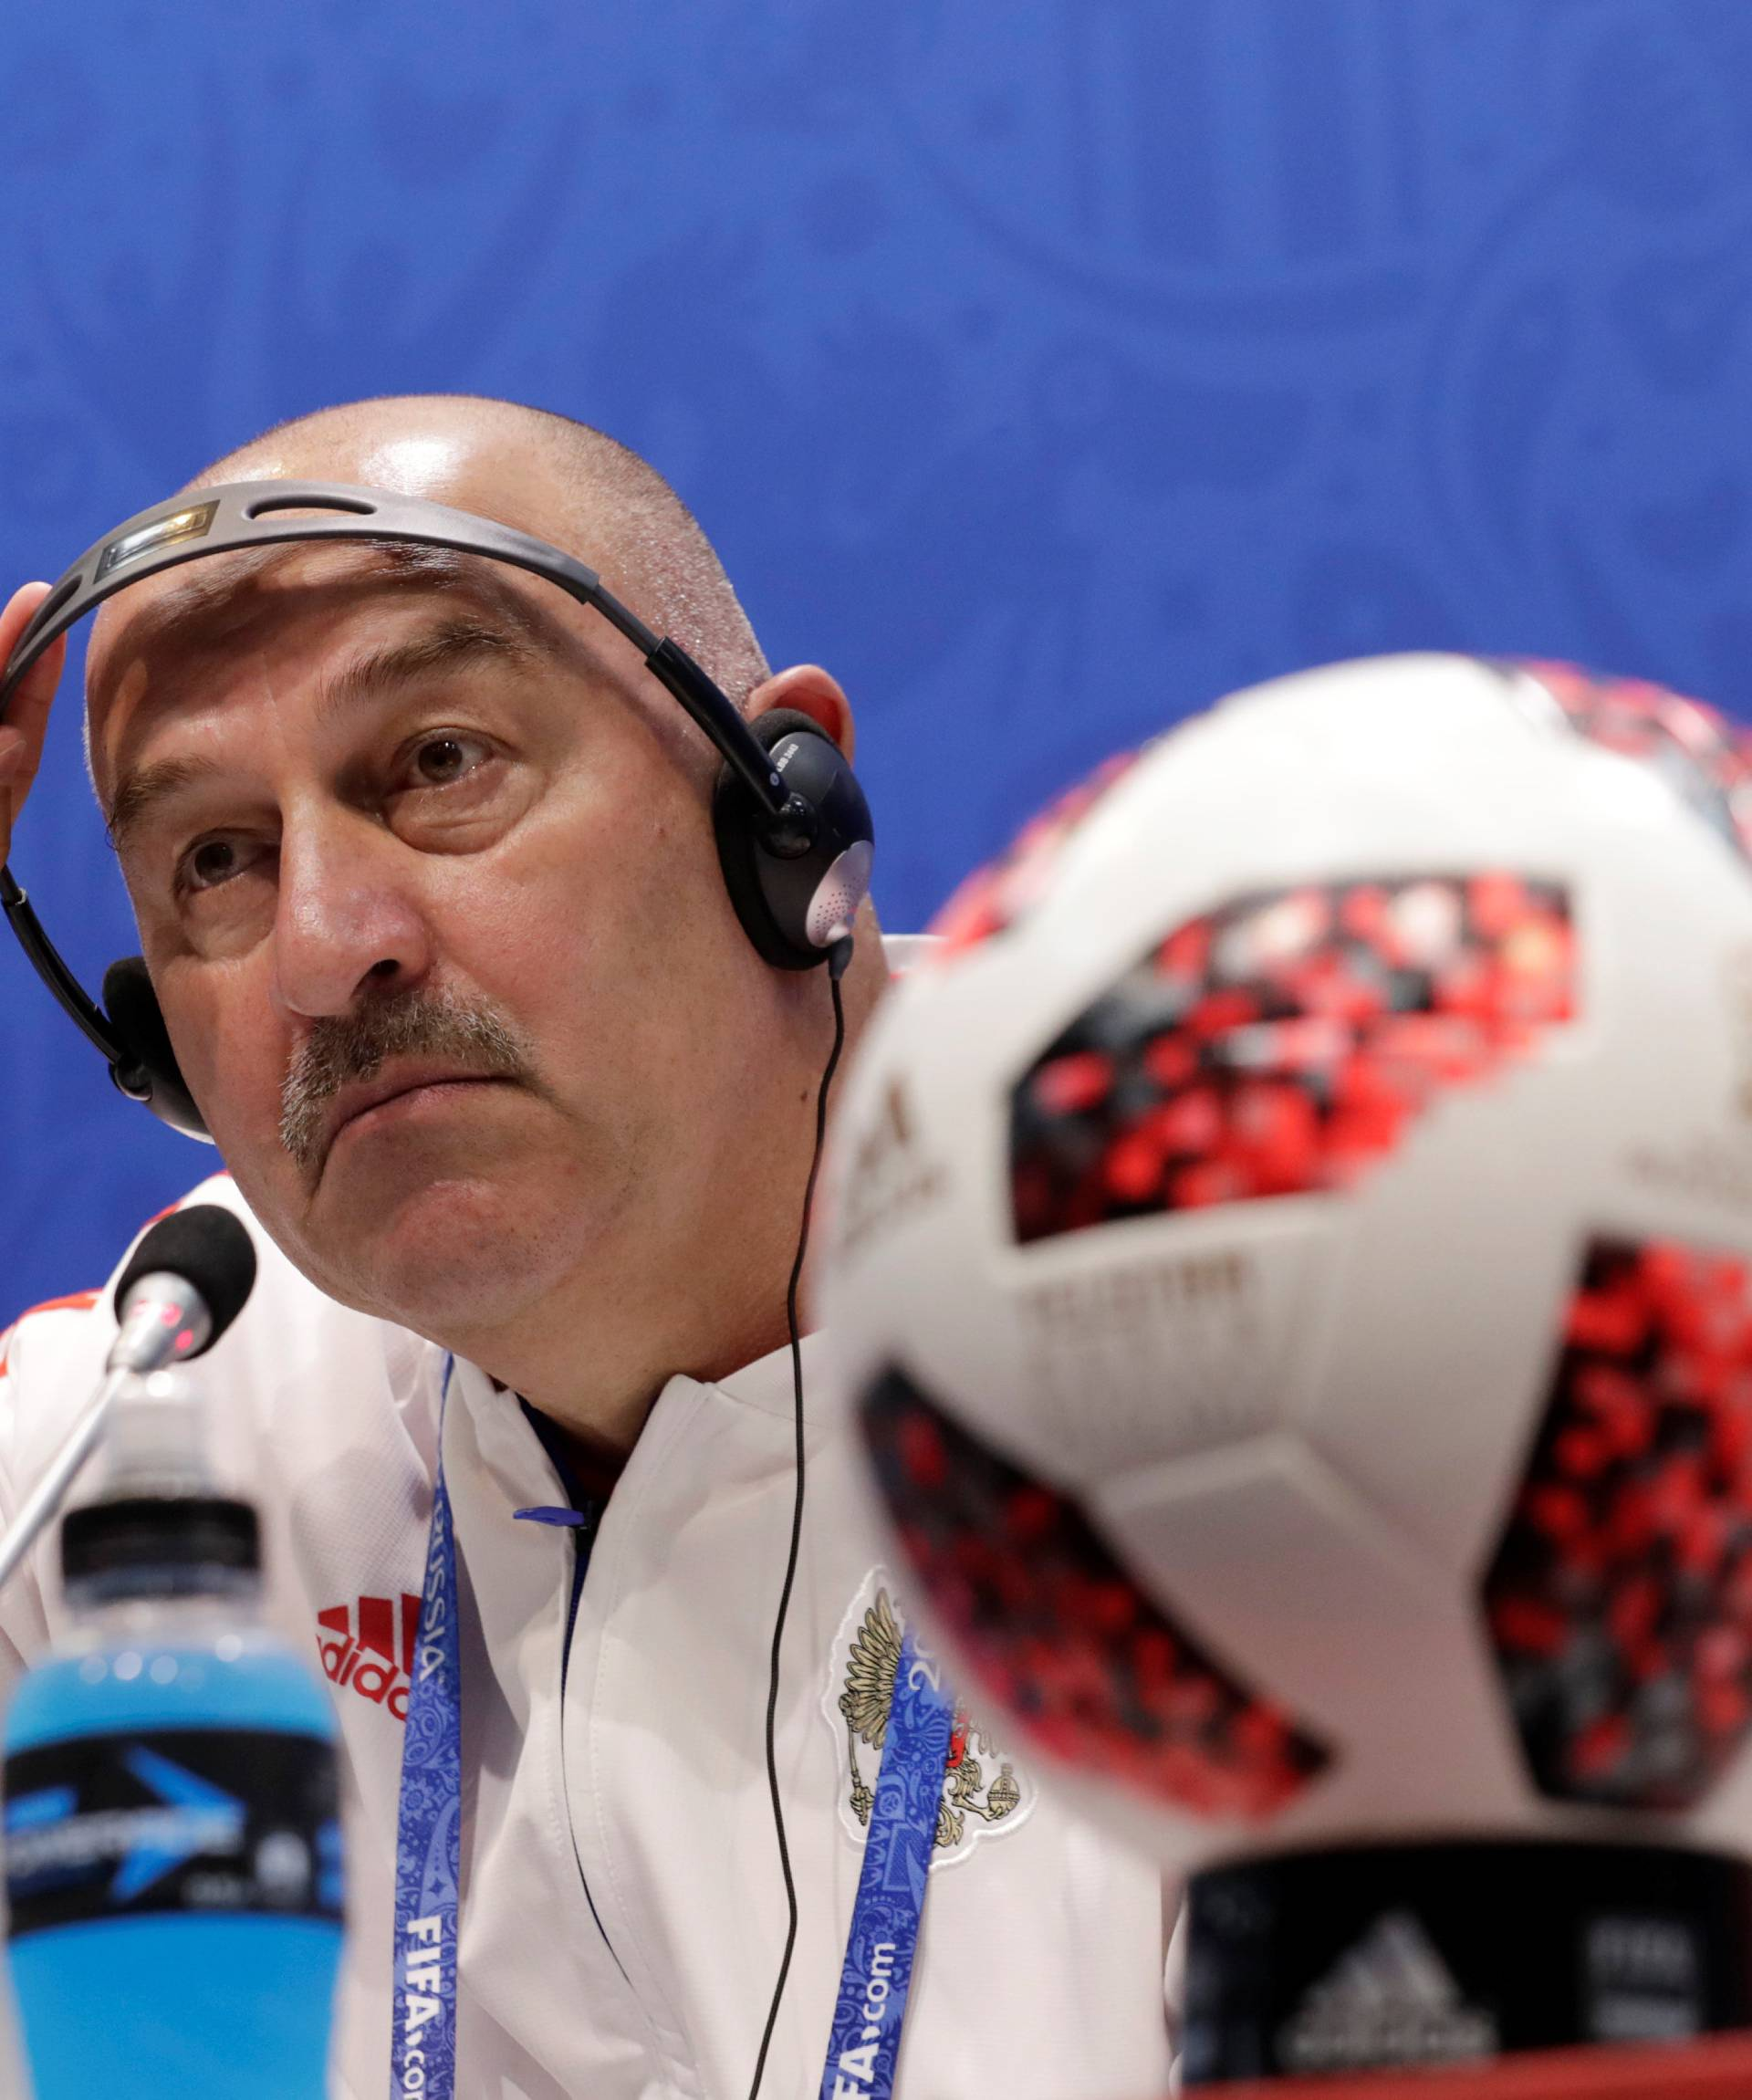 World Cup - Russia Press Conference